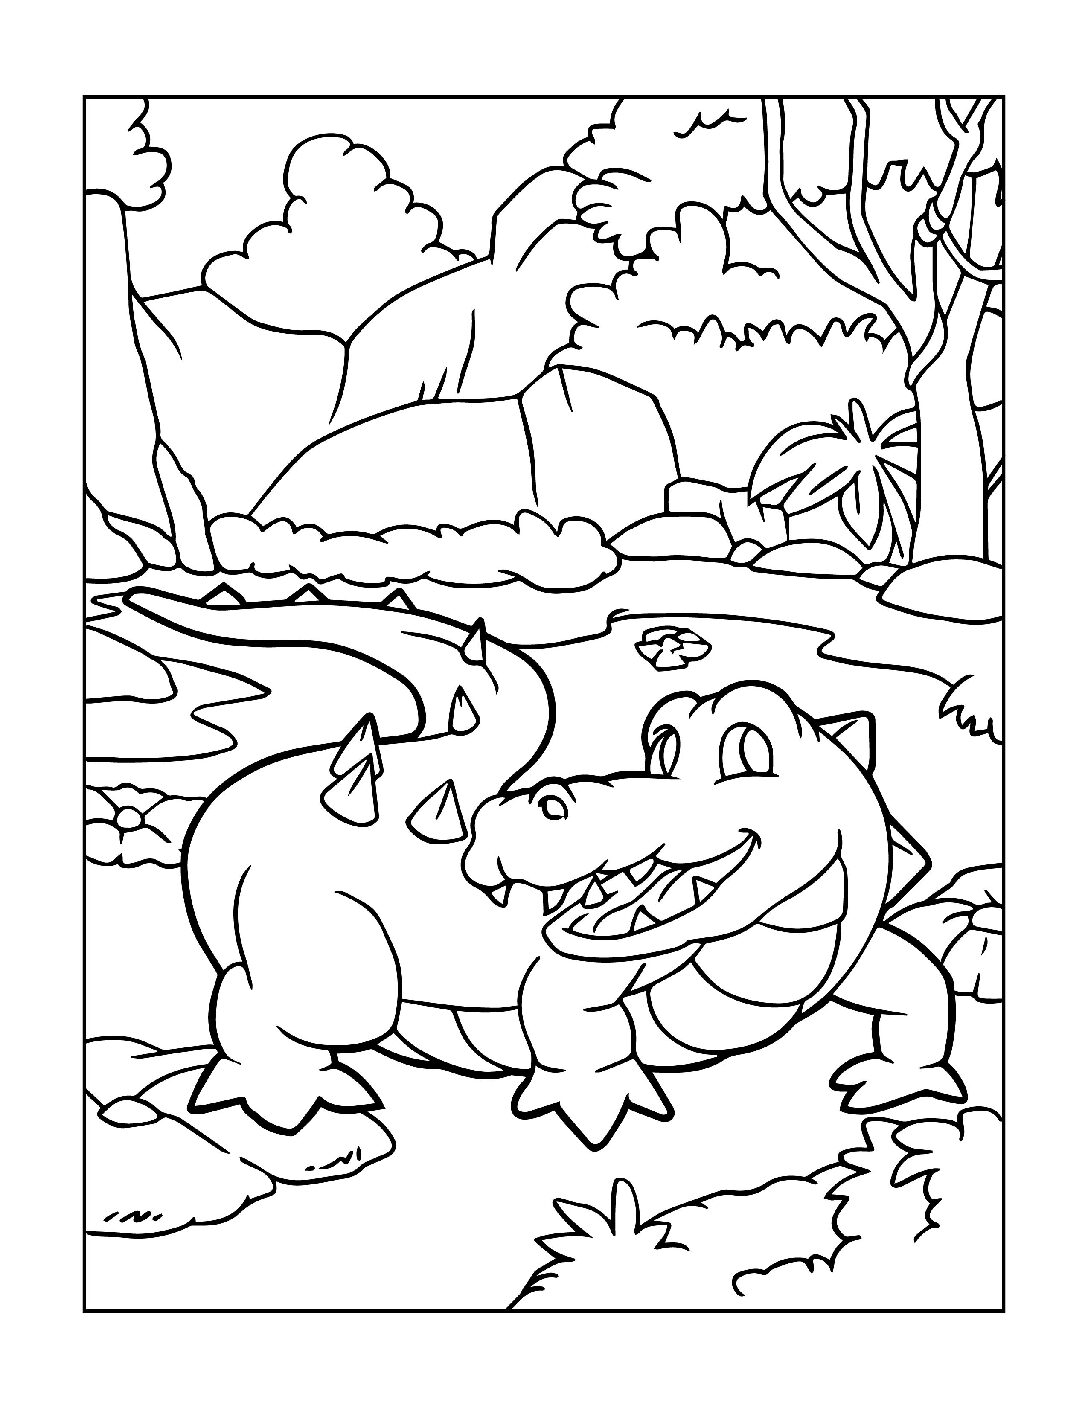 Coloring-Pages-Zoo-Animals-5-01-2-pdf Free Printable  Zoo Animals Colouring Pages